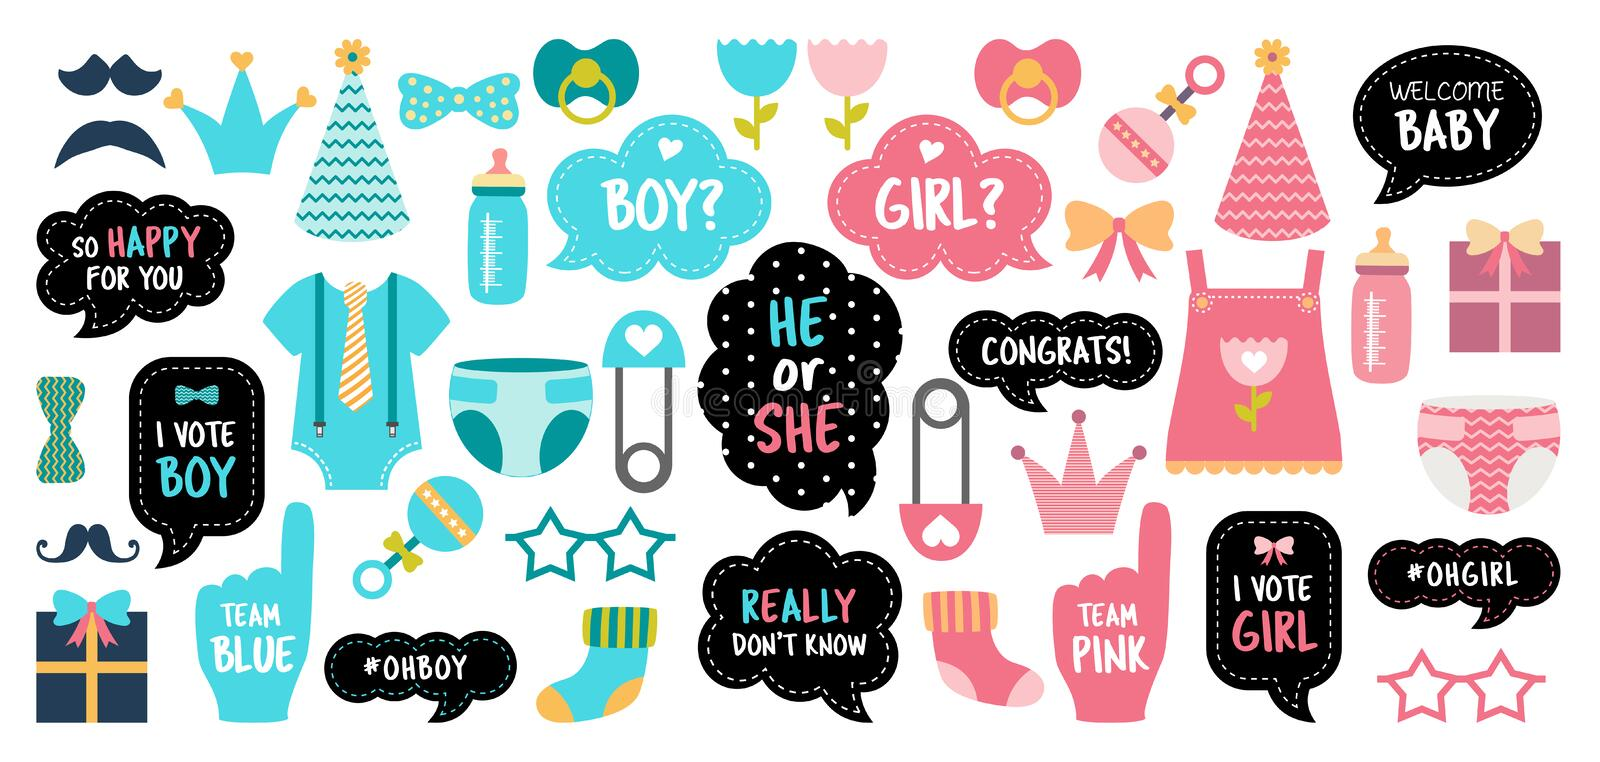 Gender reveal baby shower photo booth props royalty free illustration